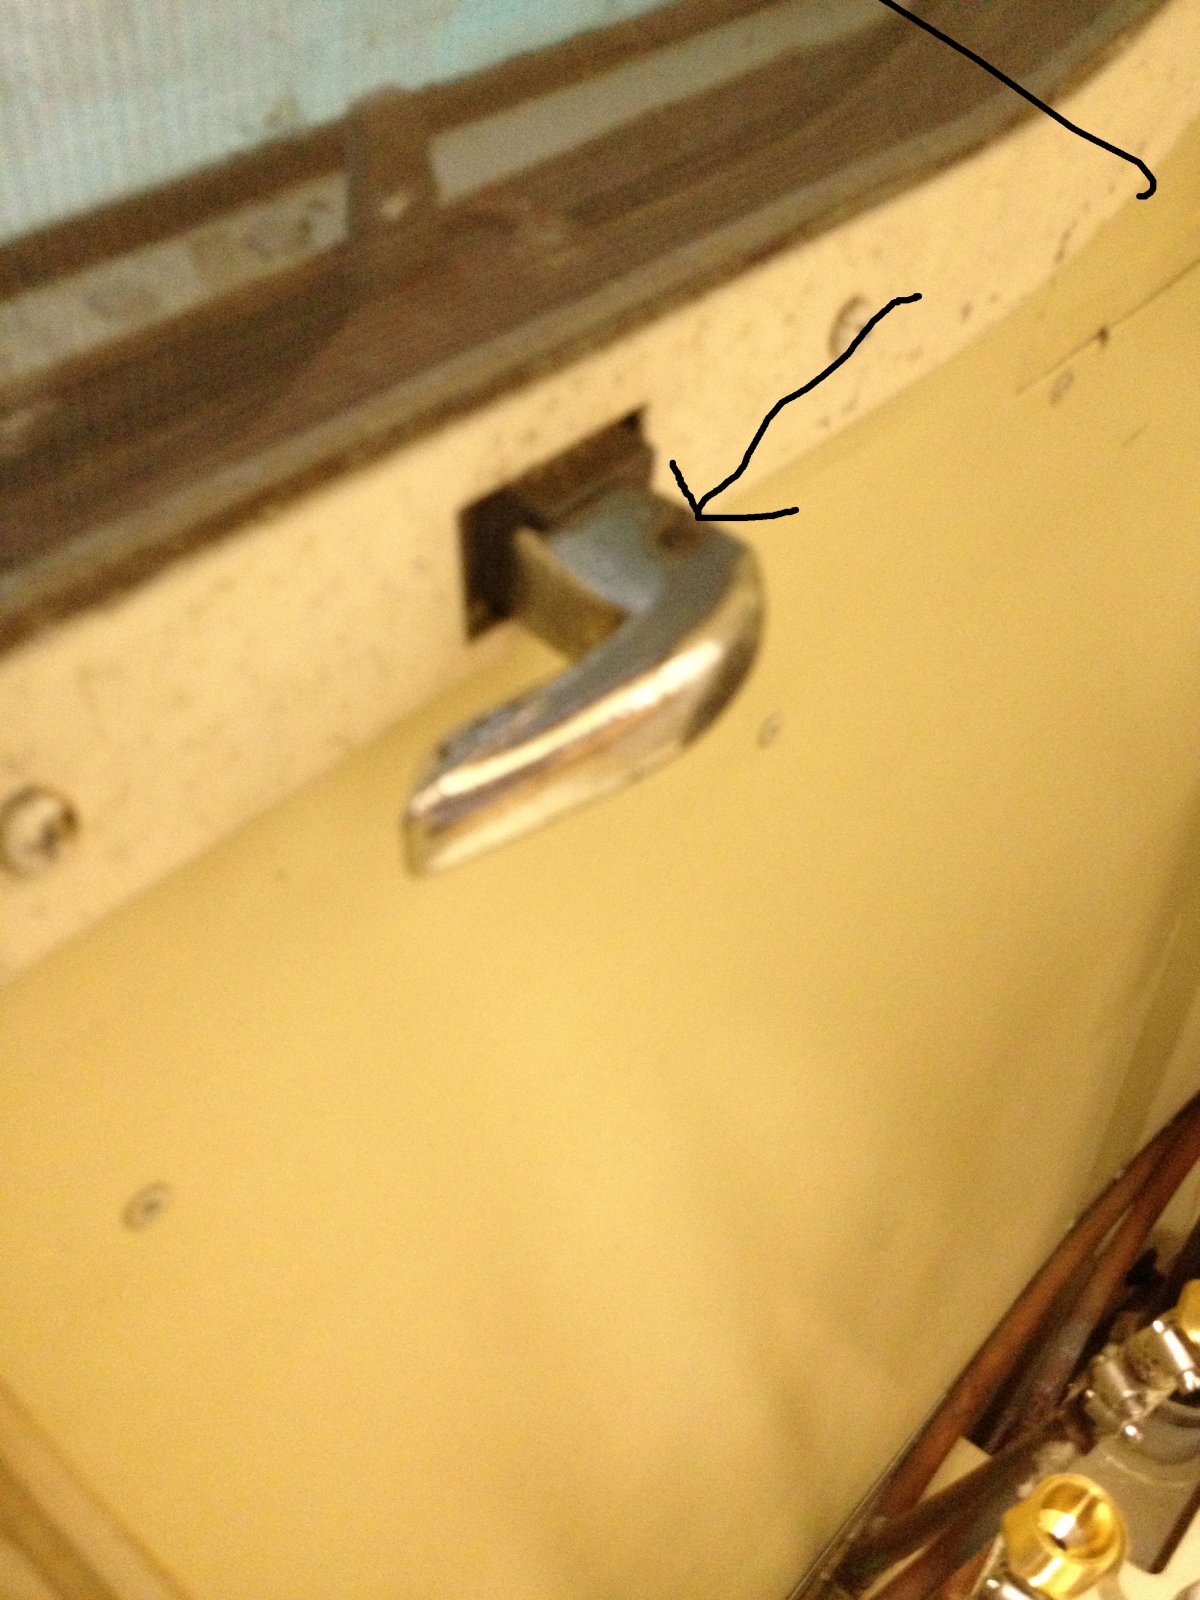 Click image for larger version  Name:Window Latch.jpg Views:47 Size:270.7 KB ID:179848